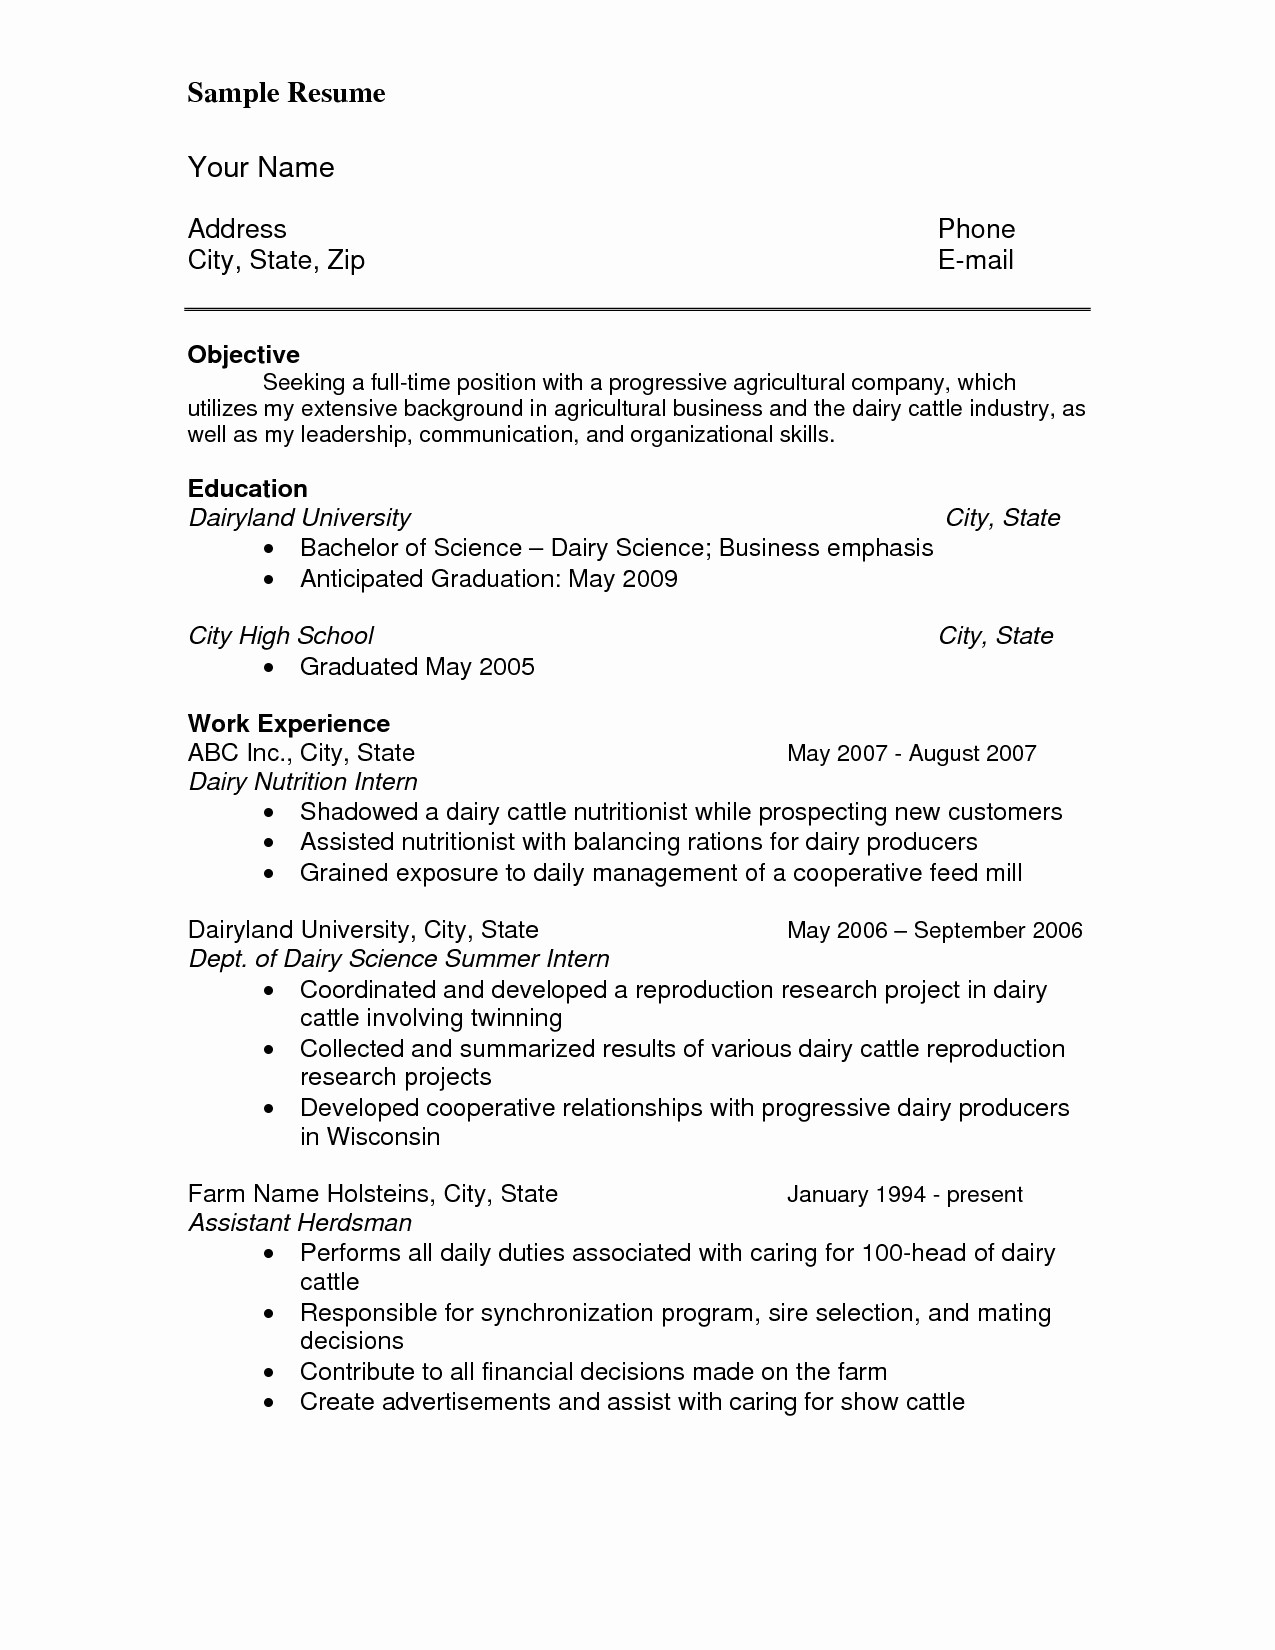 Resume for Dialysis Technician - Dialysis Technician Resume New Dialysis Technician Resume Nursing